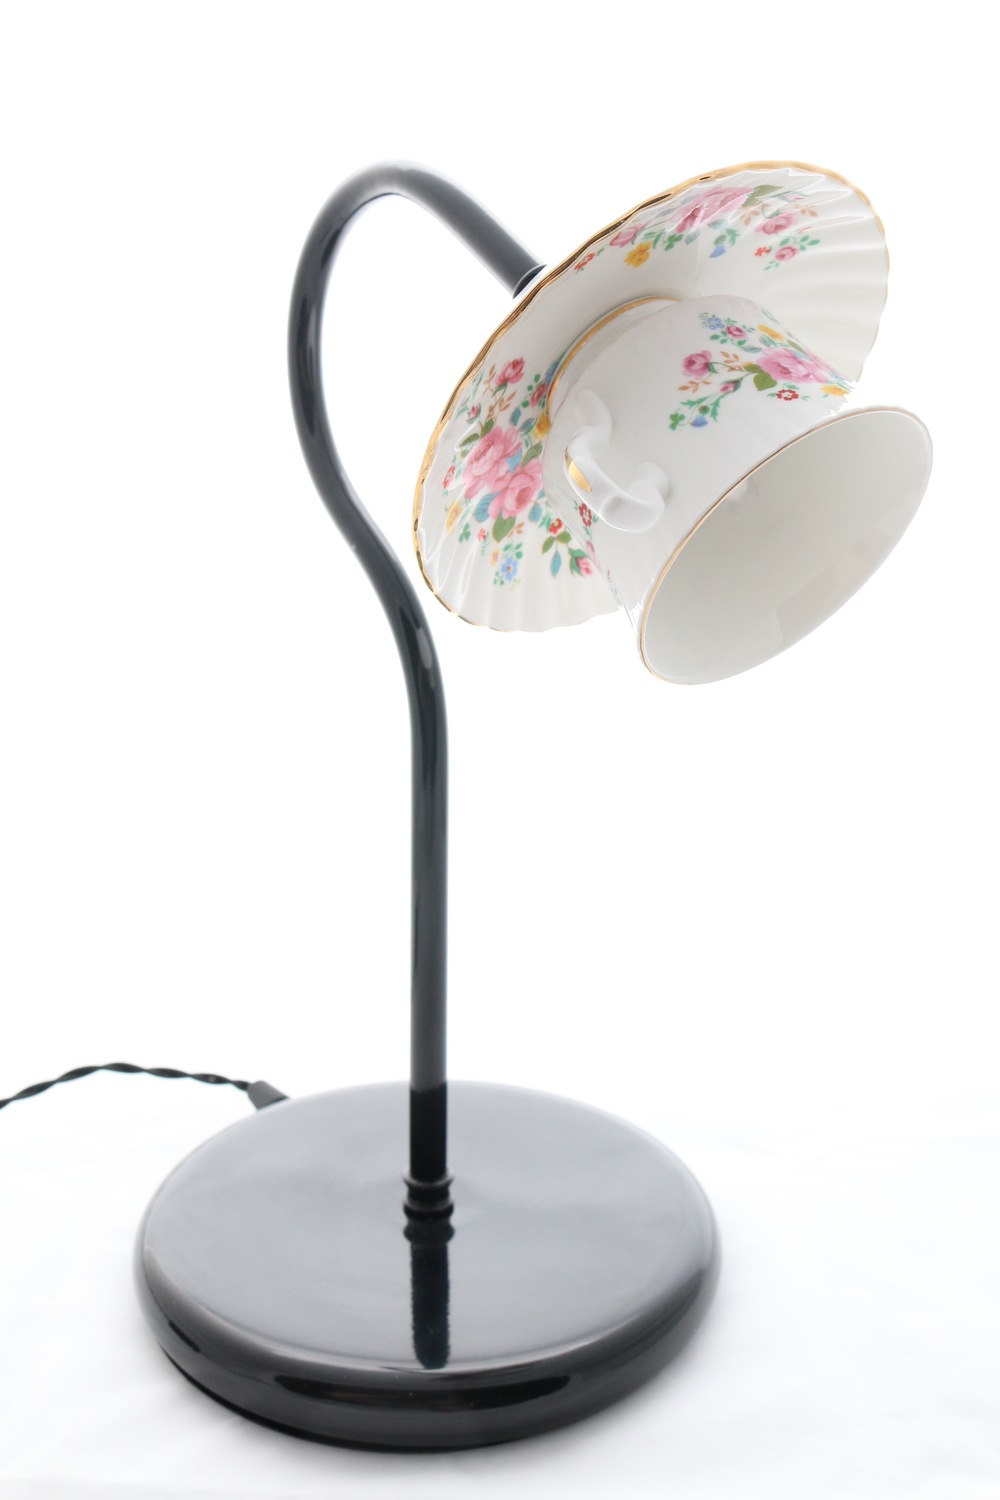 Vintage teacup desk lamp.jpg